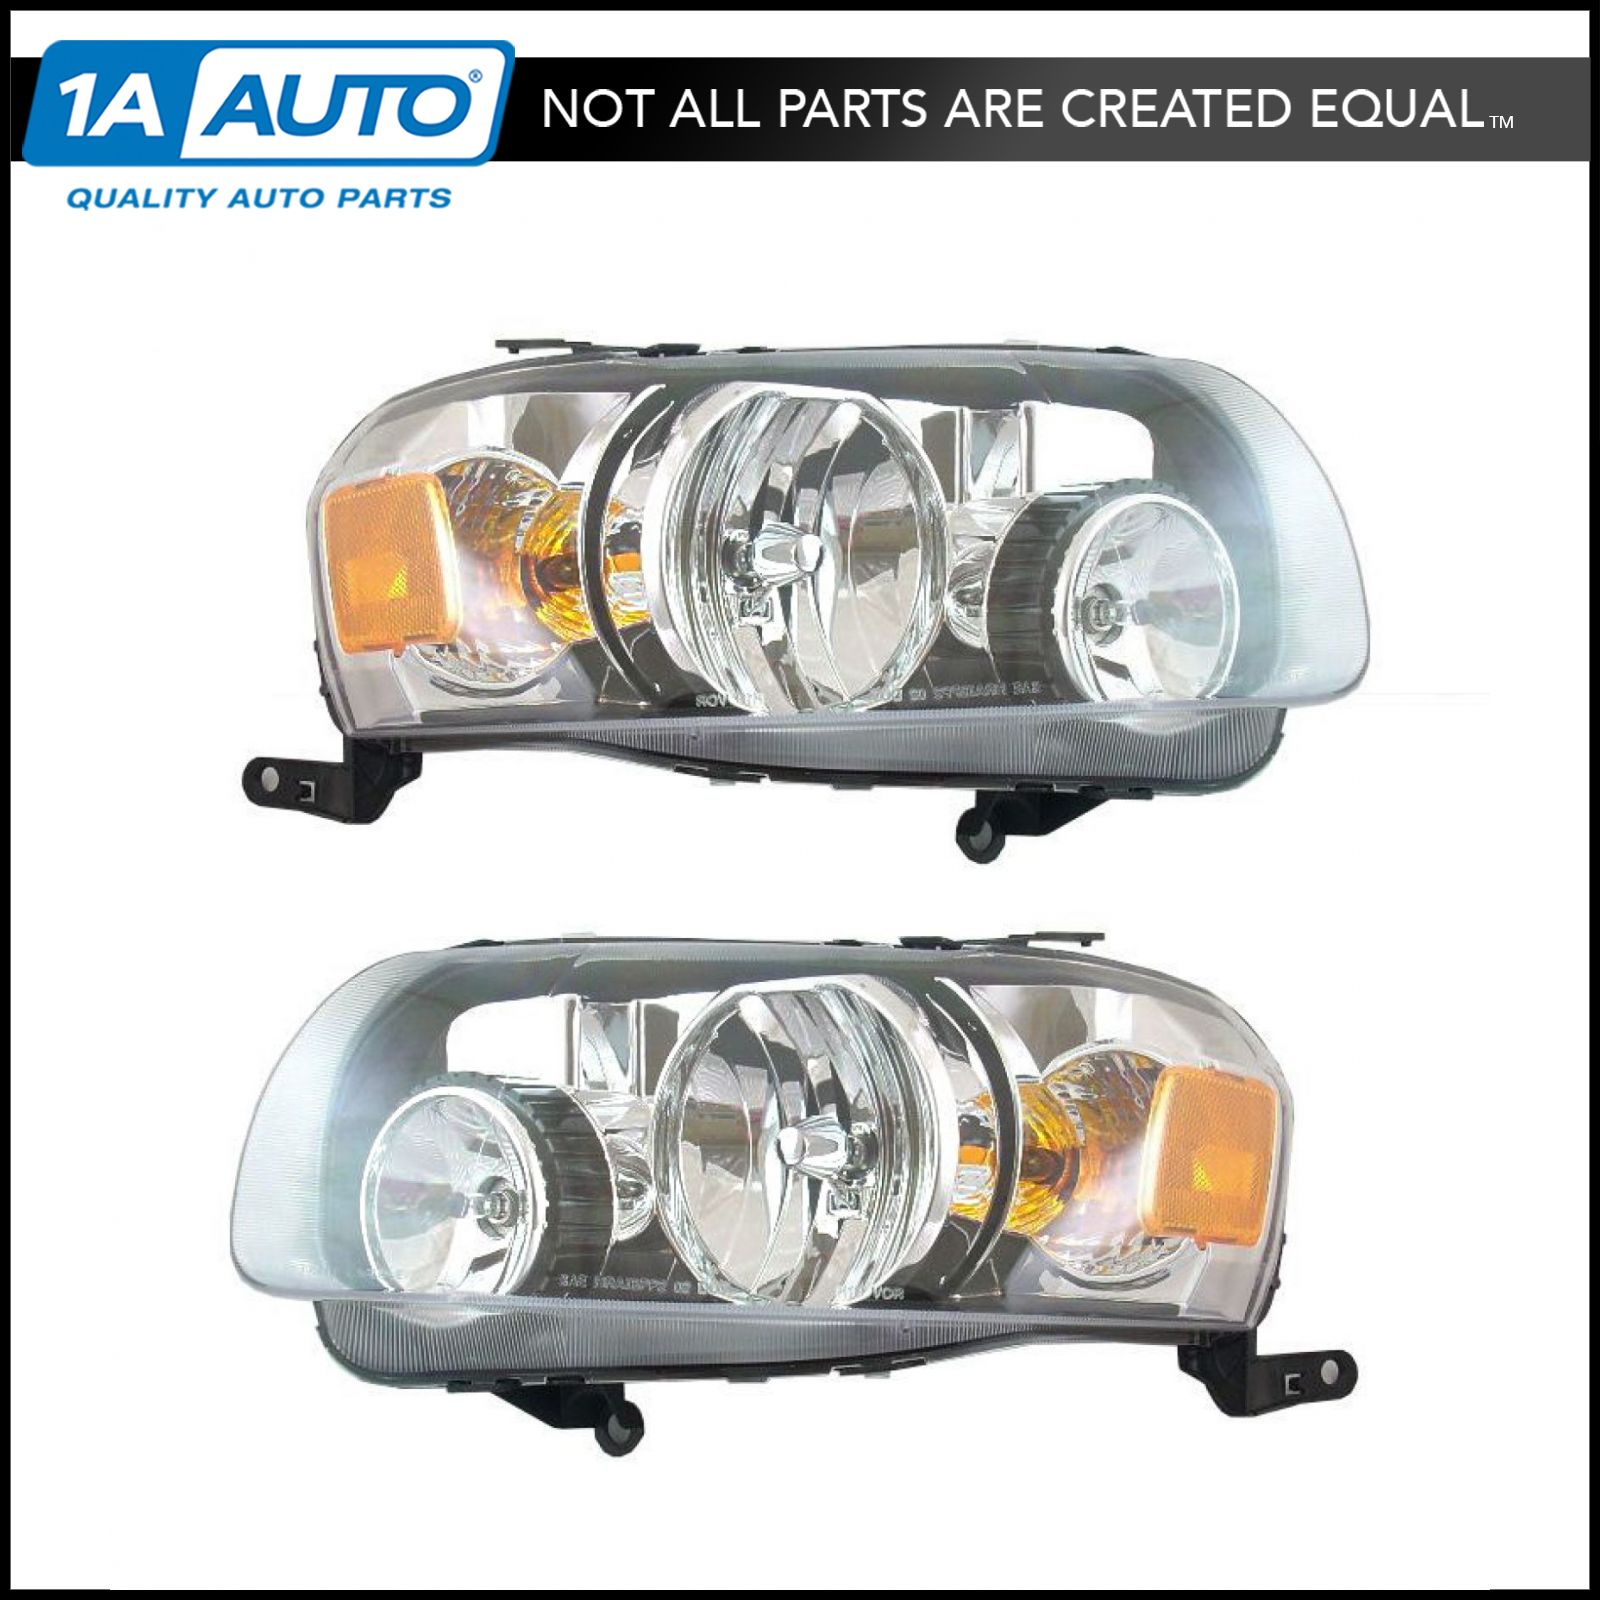 2006 ford escape headlight wiring diagram trane thermostat headlights headlamps pair set left right new for 05 07